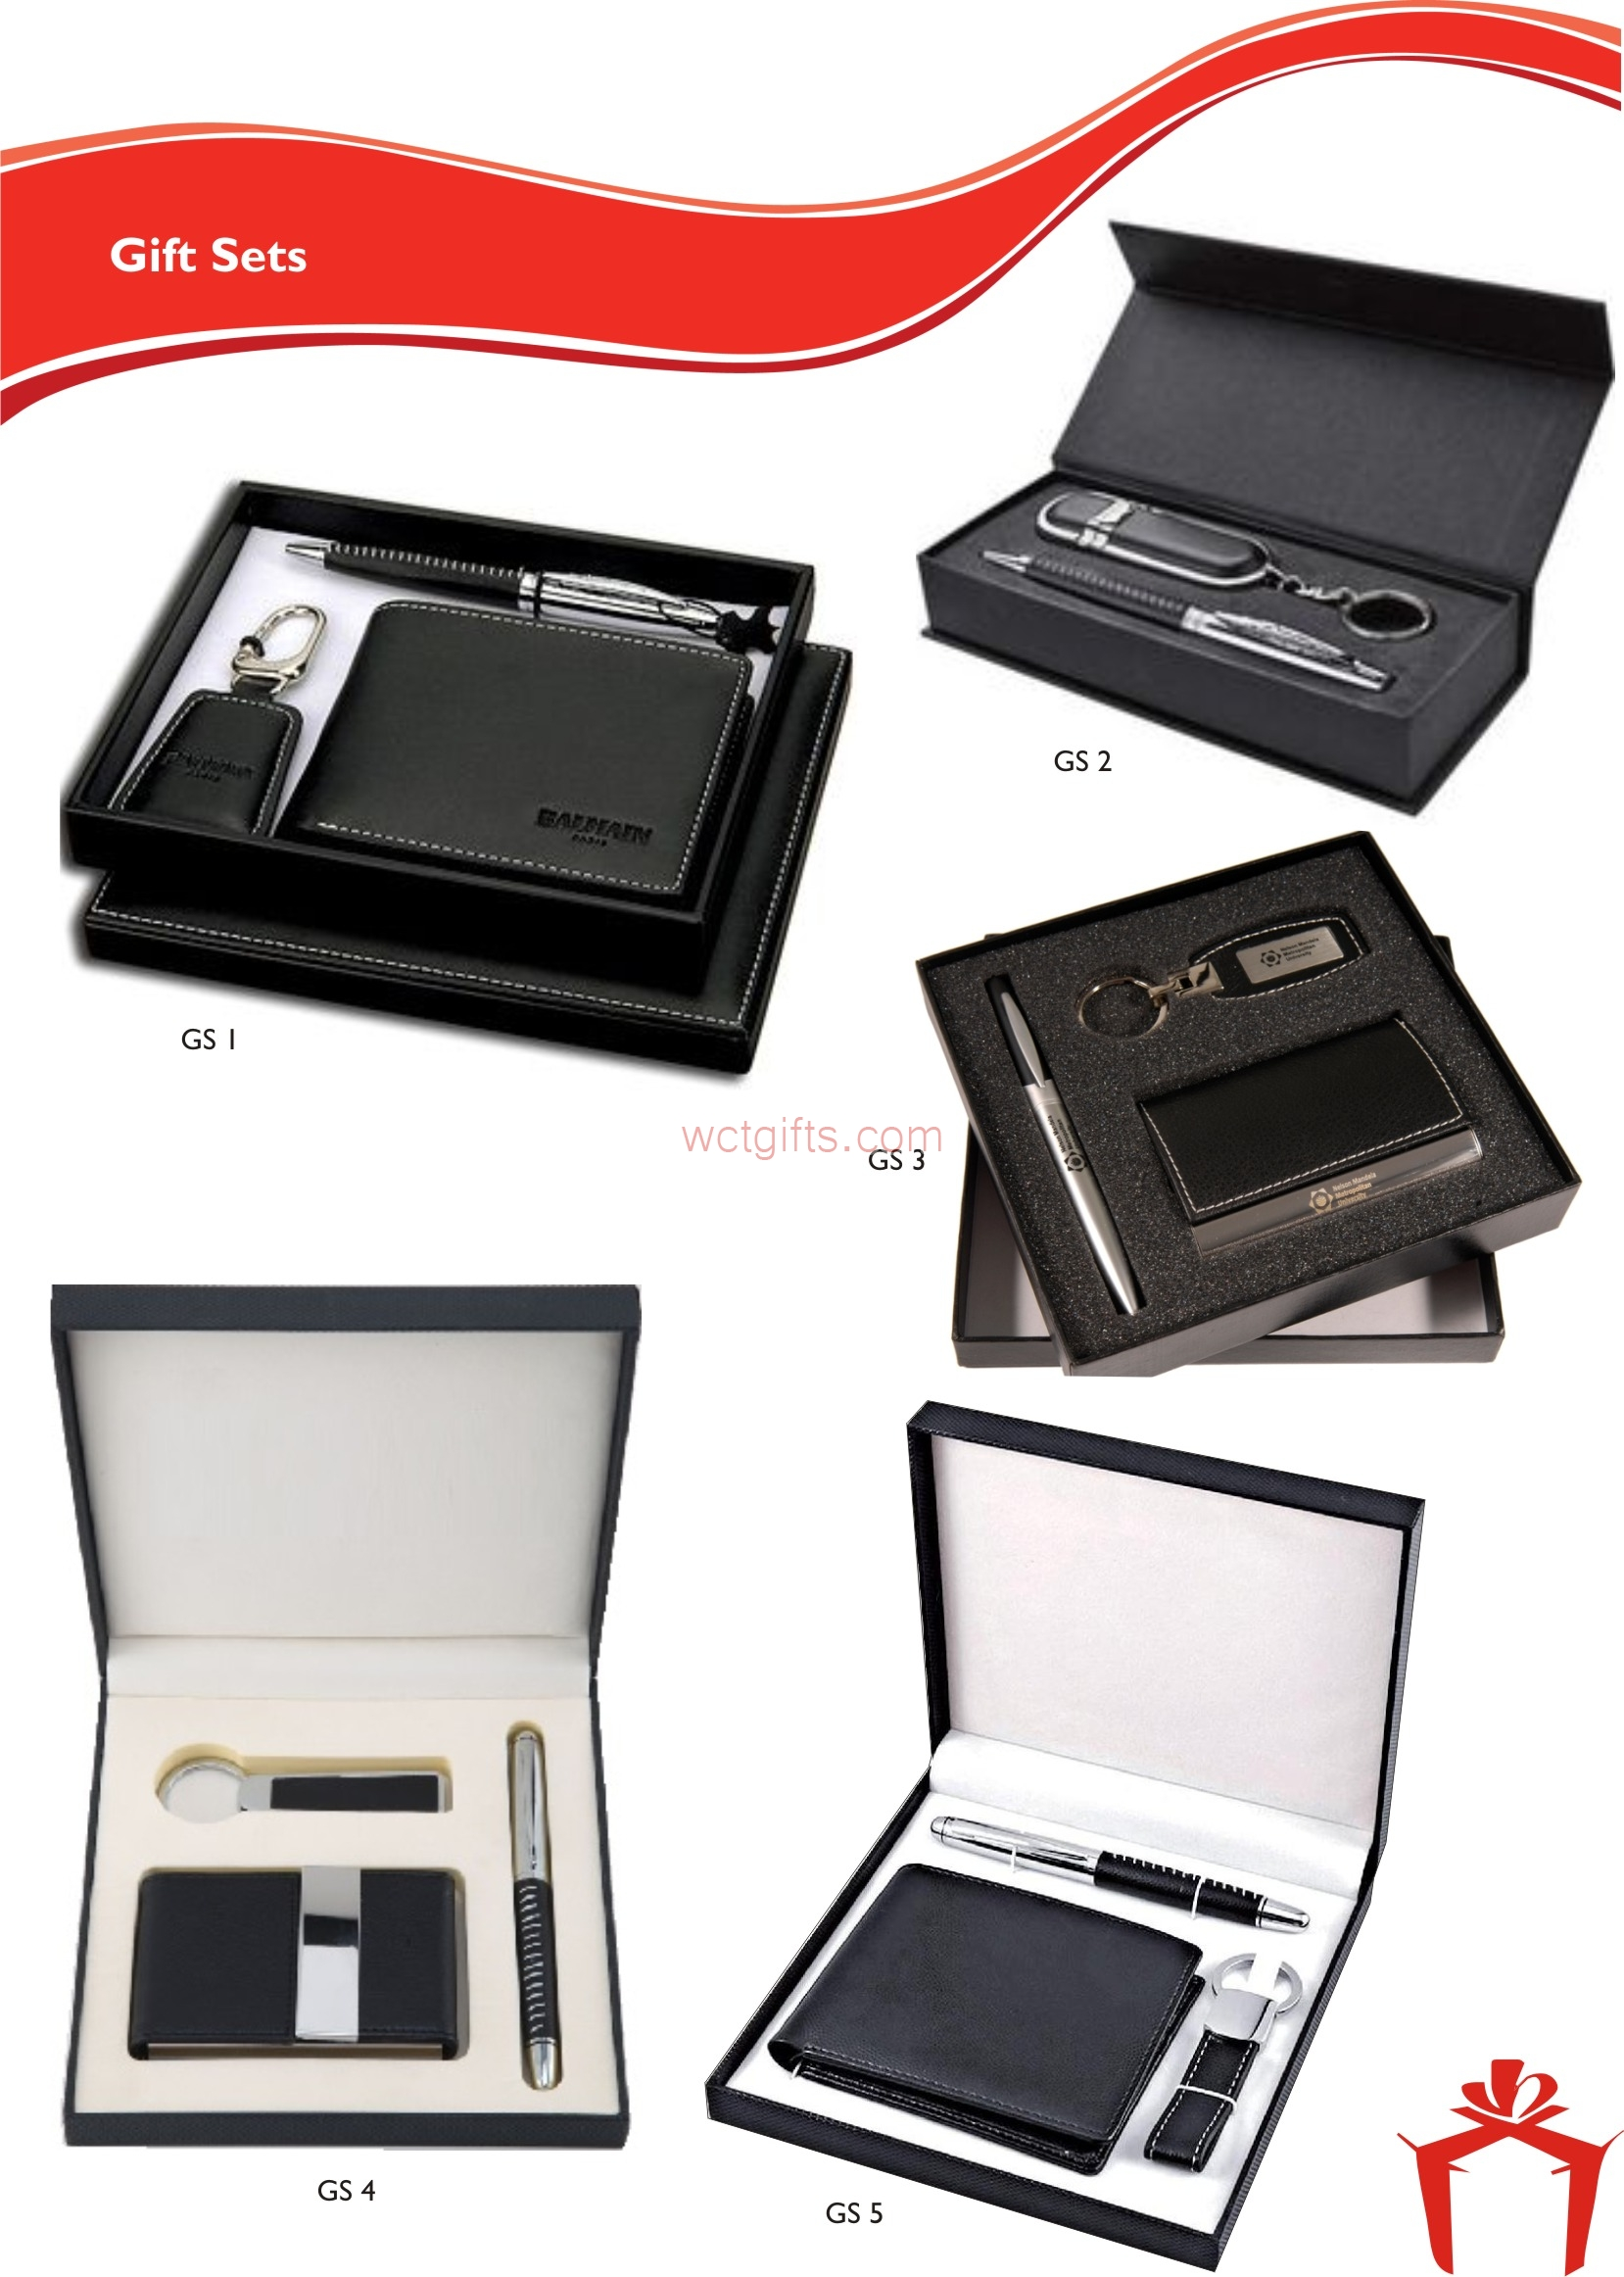 Corporate Gift Sets Pen Gift Sets Notebook Gift Sets Gift